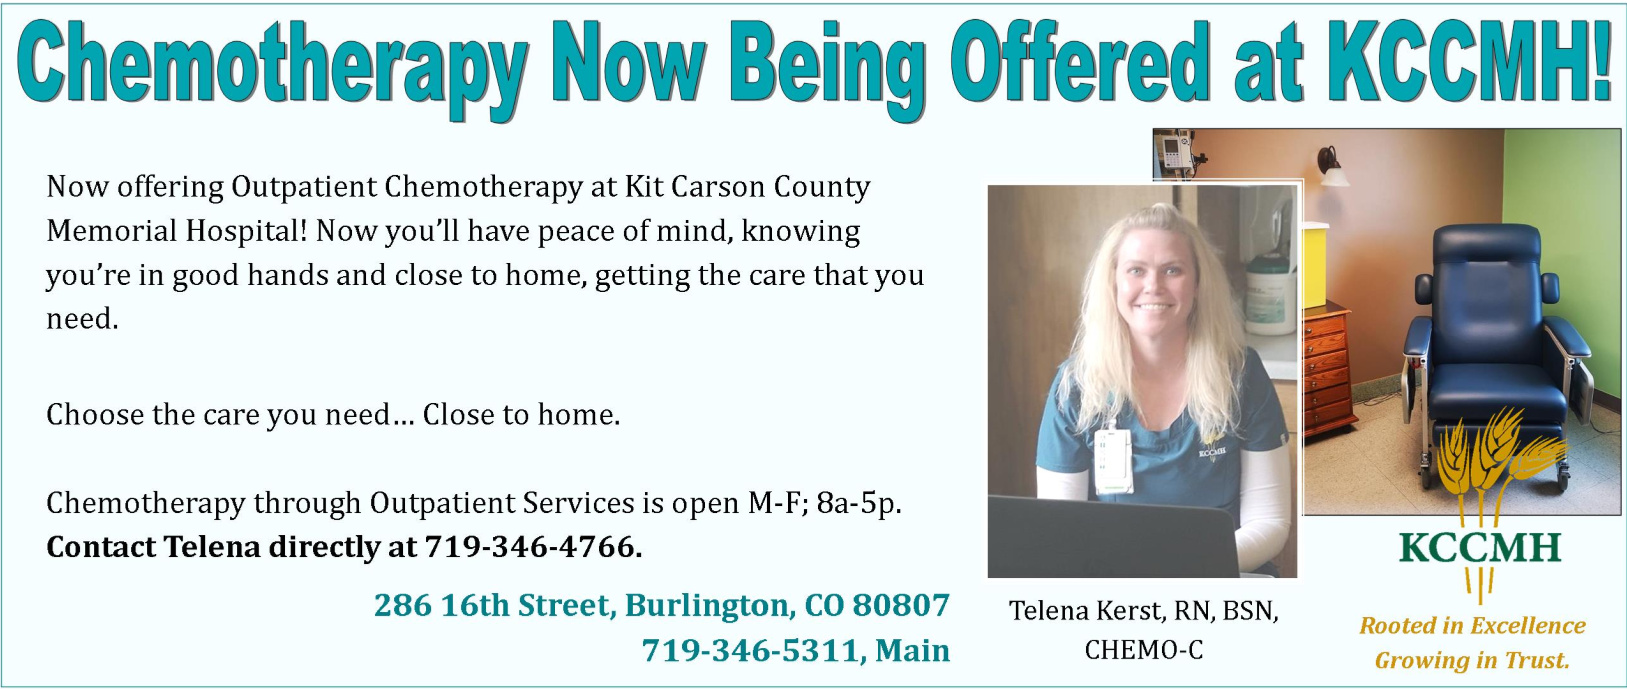 Chemotherapy is now offered at the KCCMH Outpatient Services